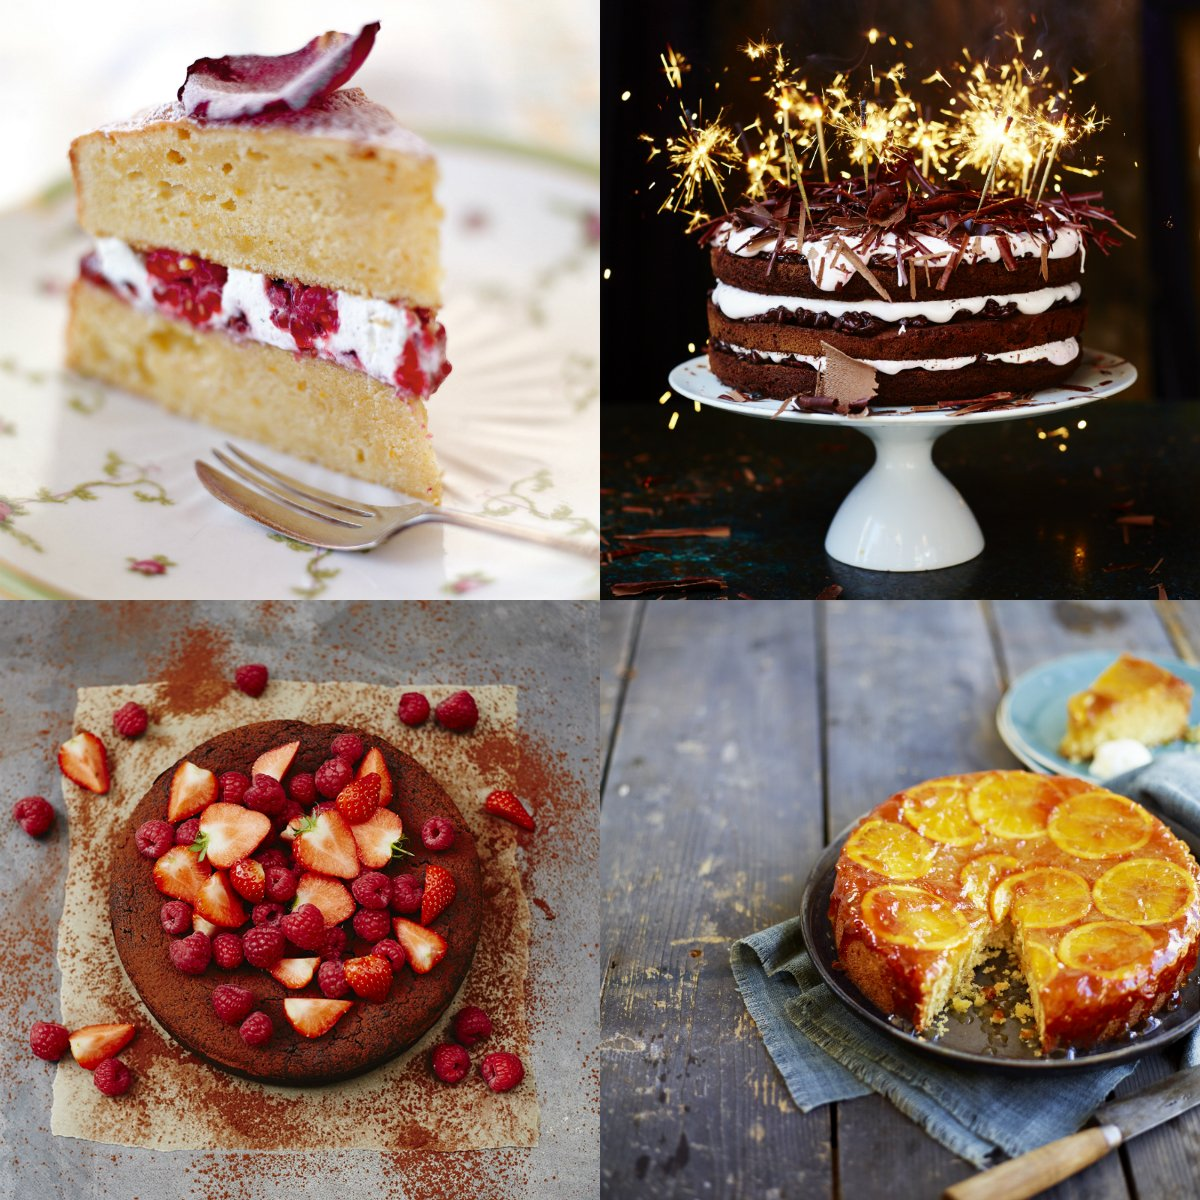 Ultimate bakes for #mothersday gang get baking and surprise your mum with an awesome cake !! https://t.co/0v5MZTSPdX https://t.co/E6cRDAoxPf